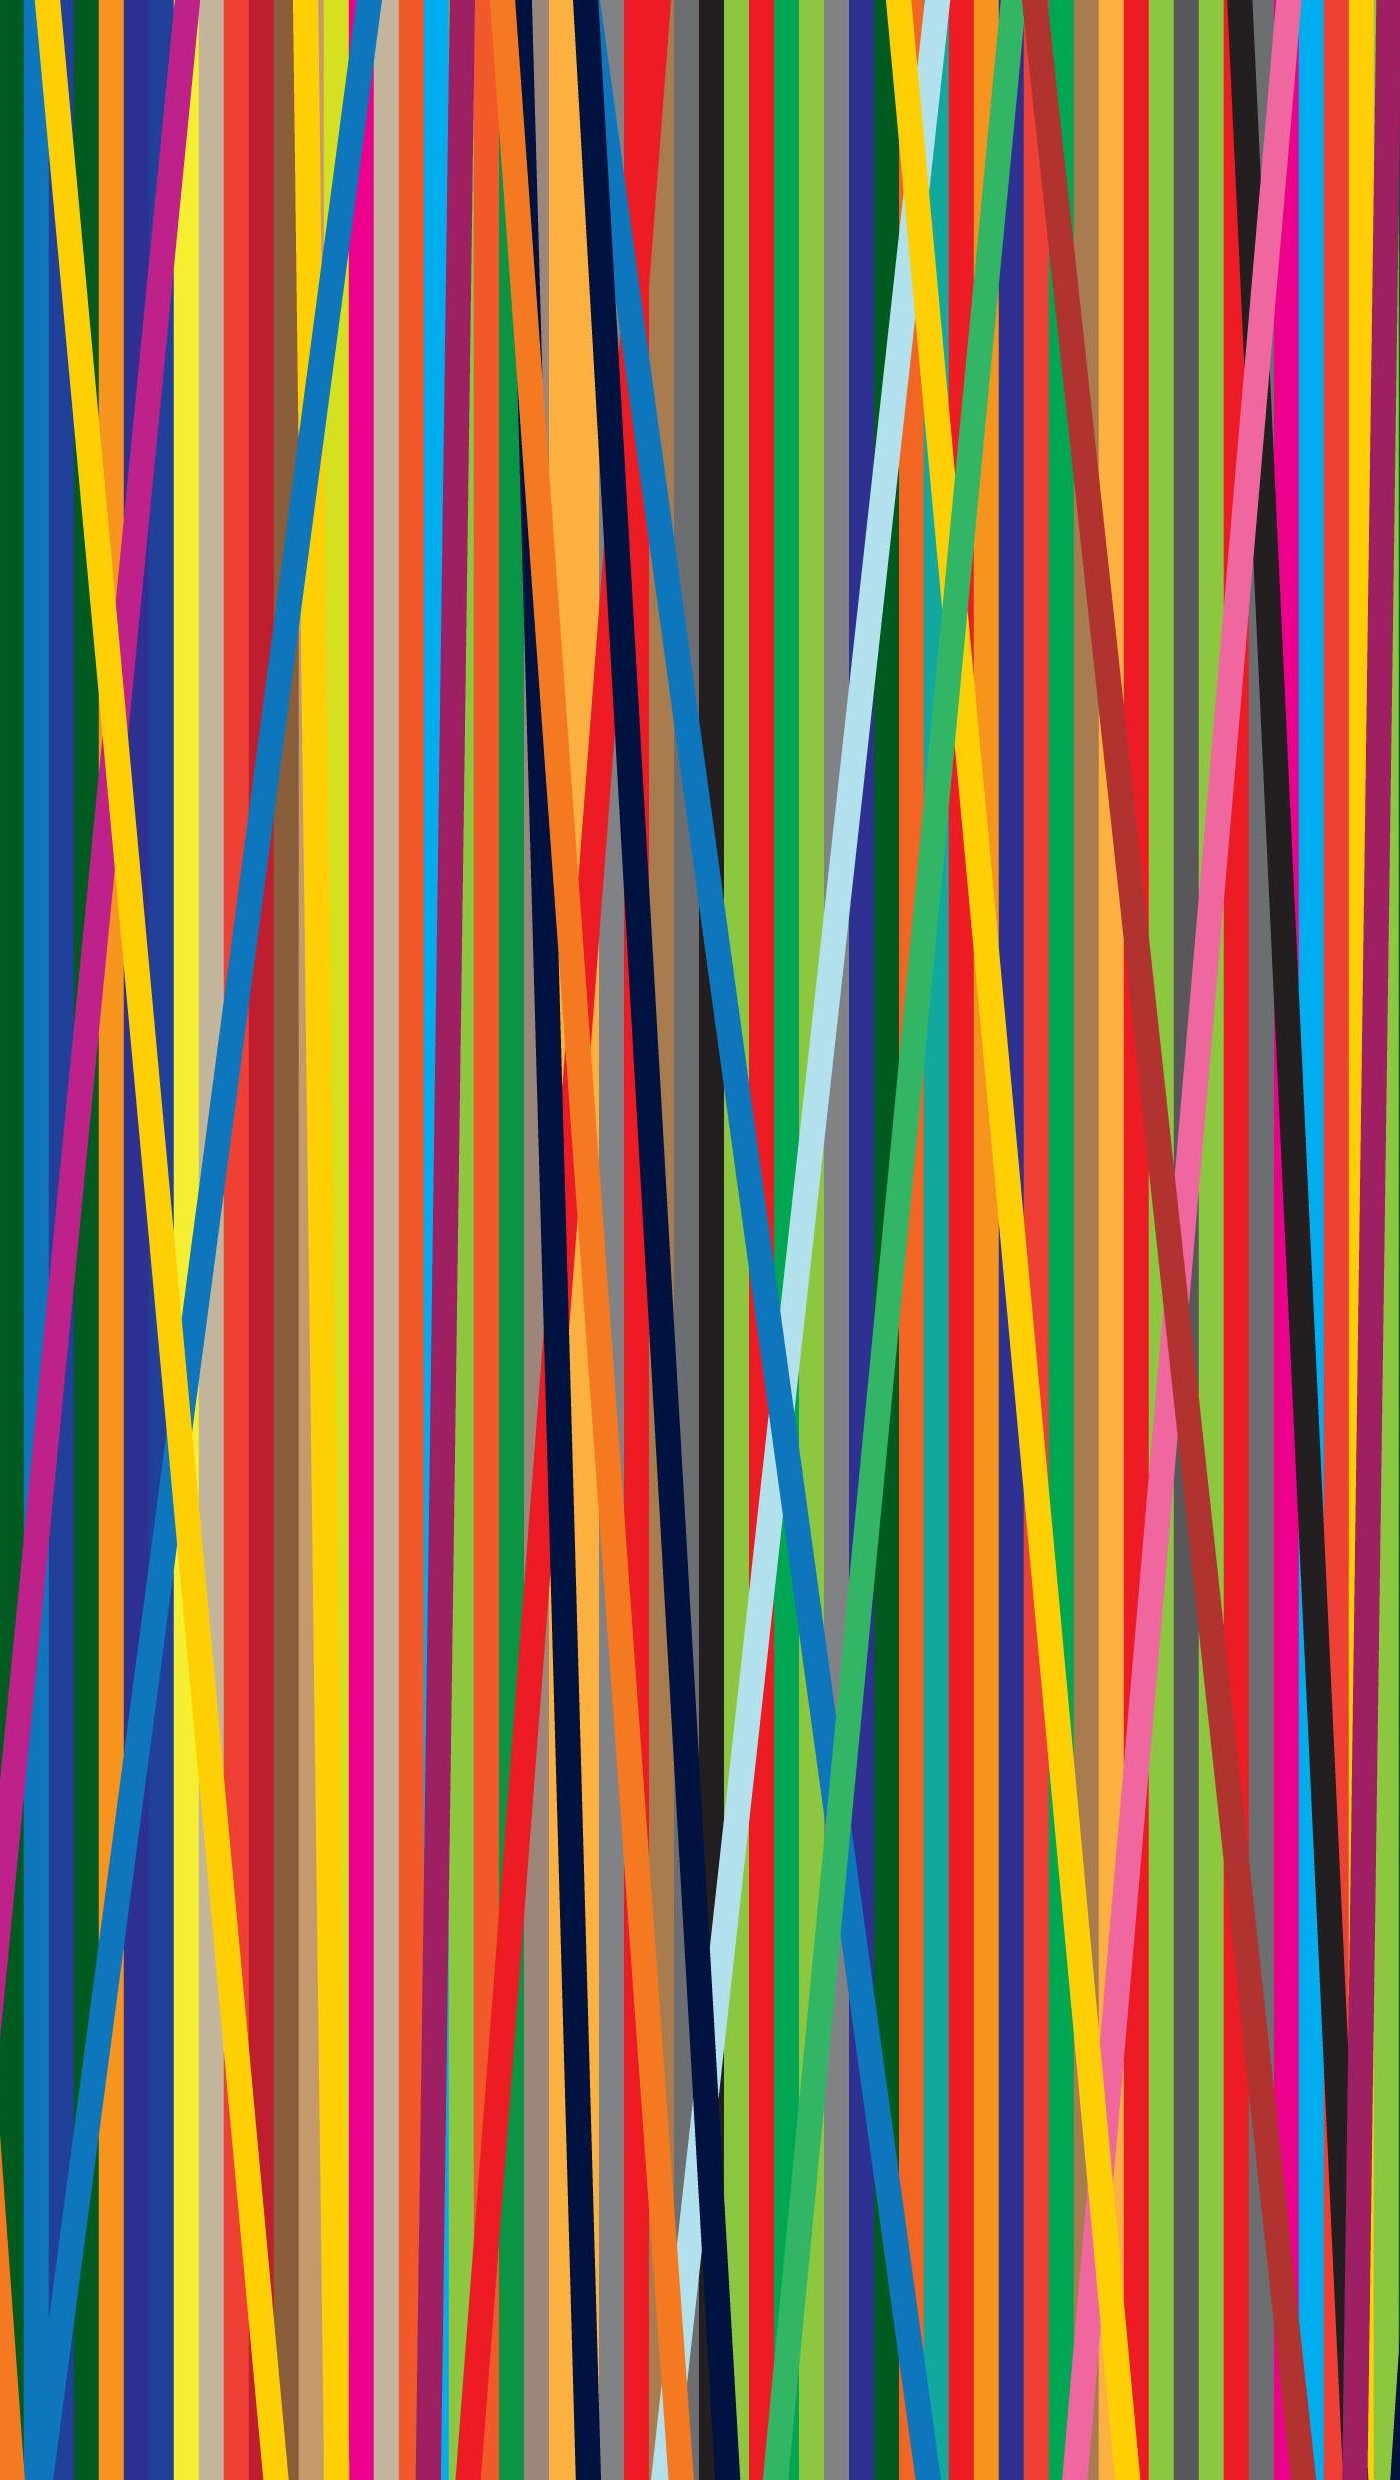 Wallpaper Colored lines Vertical